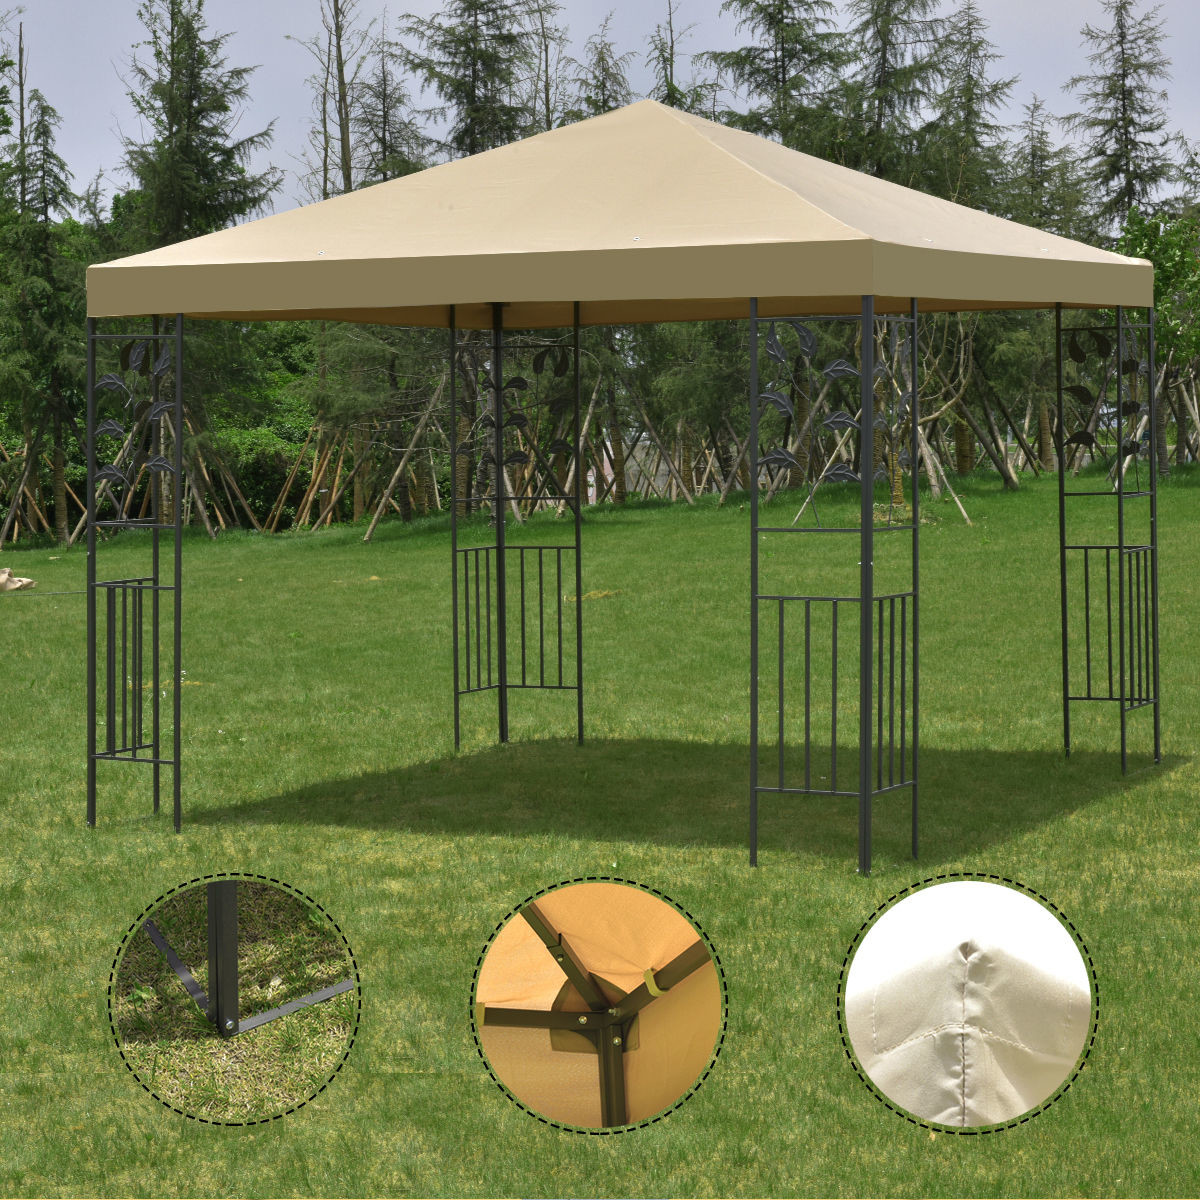 Outdoor 10'x10' Square Gazebo Canopy Tent Steel Frame Shelter Awning Brown by